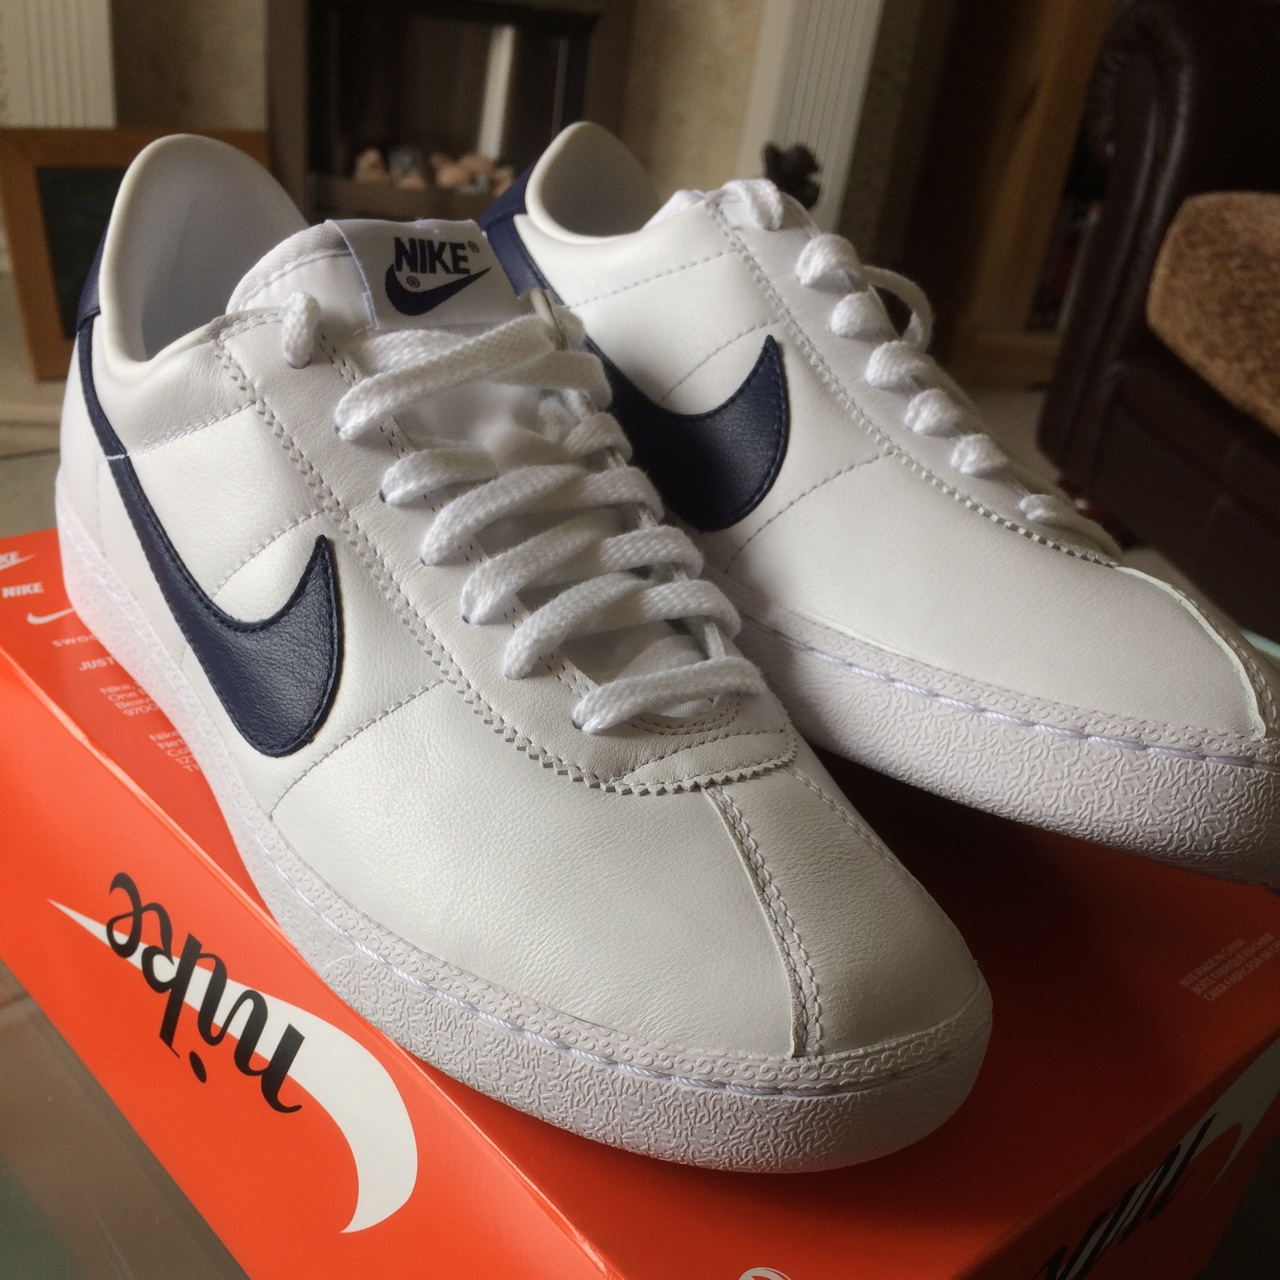 Metro germen País de origen  Brand new Nike bruin leather trainers in white/loyal... - Depop